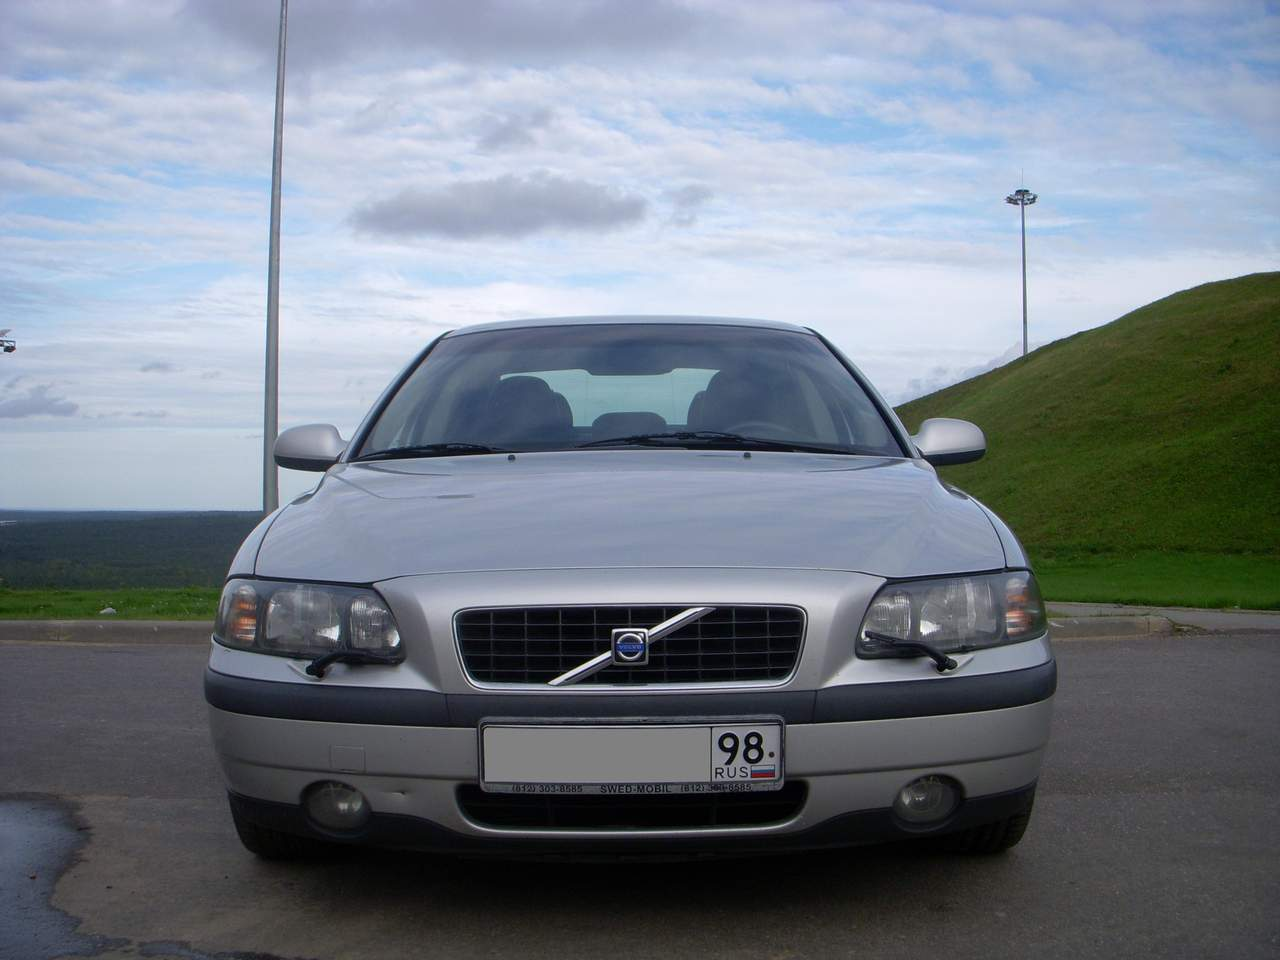 2002 volvo s60 photos 2 4 gasoline ff automatic for sale. Black Bedroom Furniture Sets. Home Design Ideas